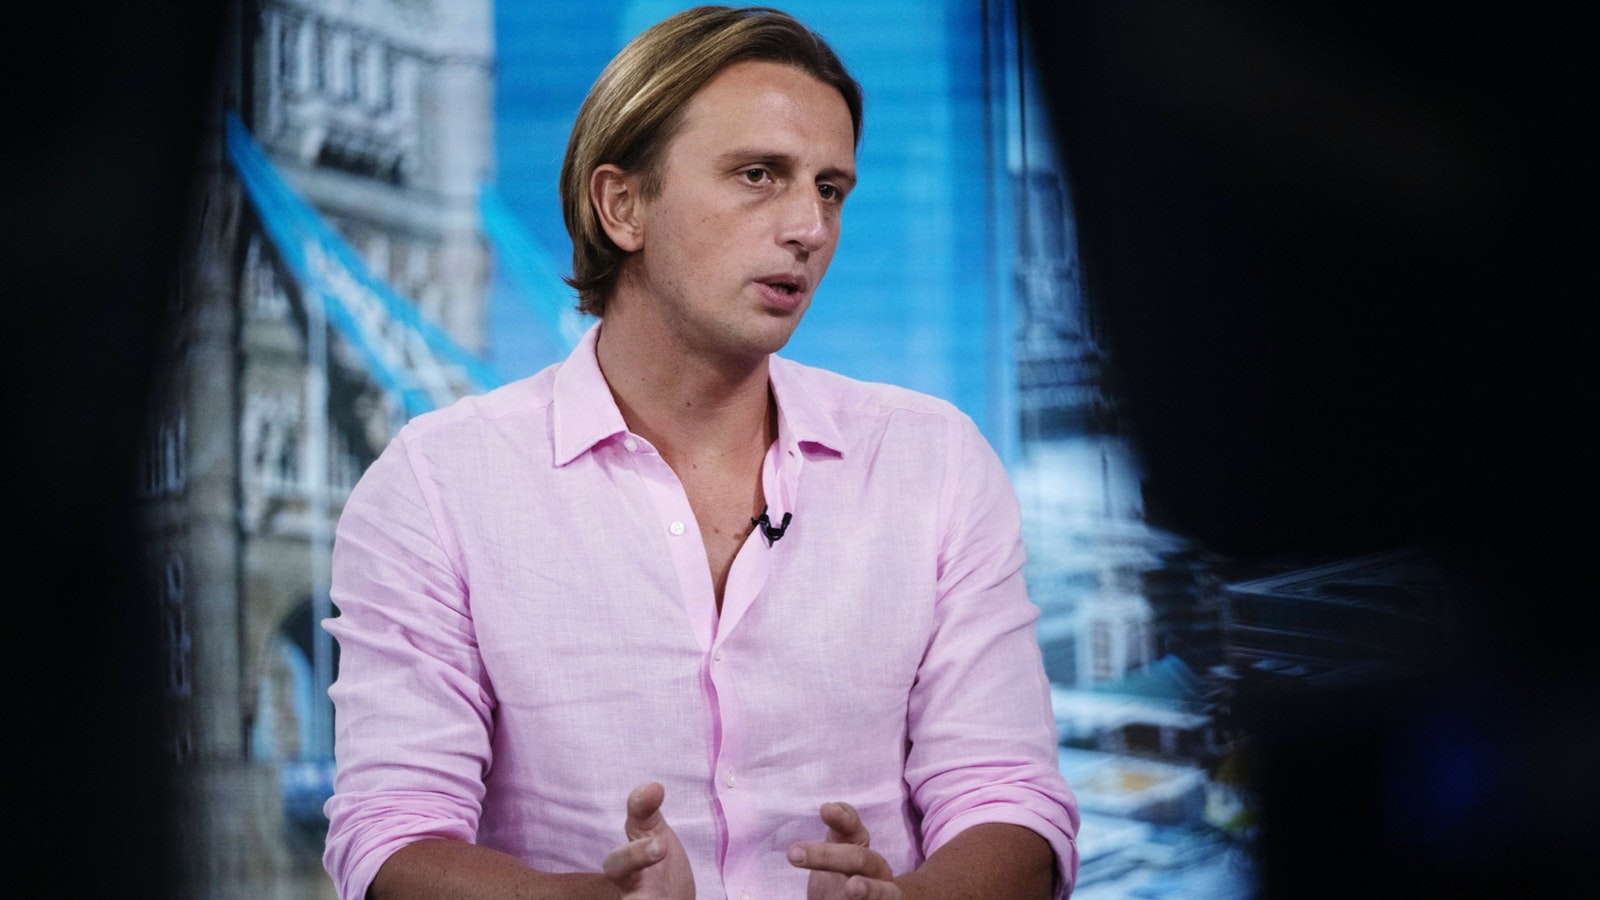 Nikolay Storonsky, CEO of Revolut, last August. Photo by Bloomberg